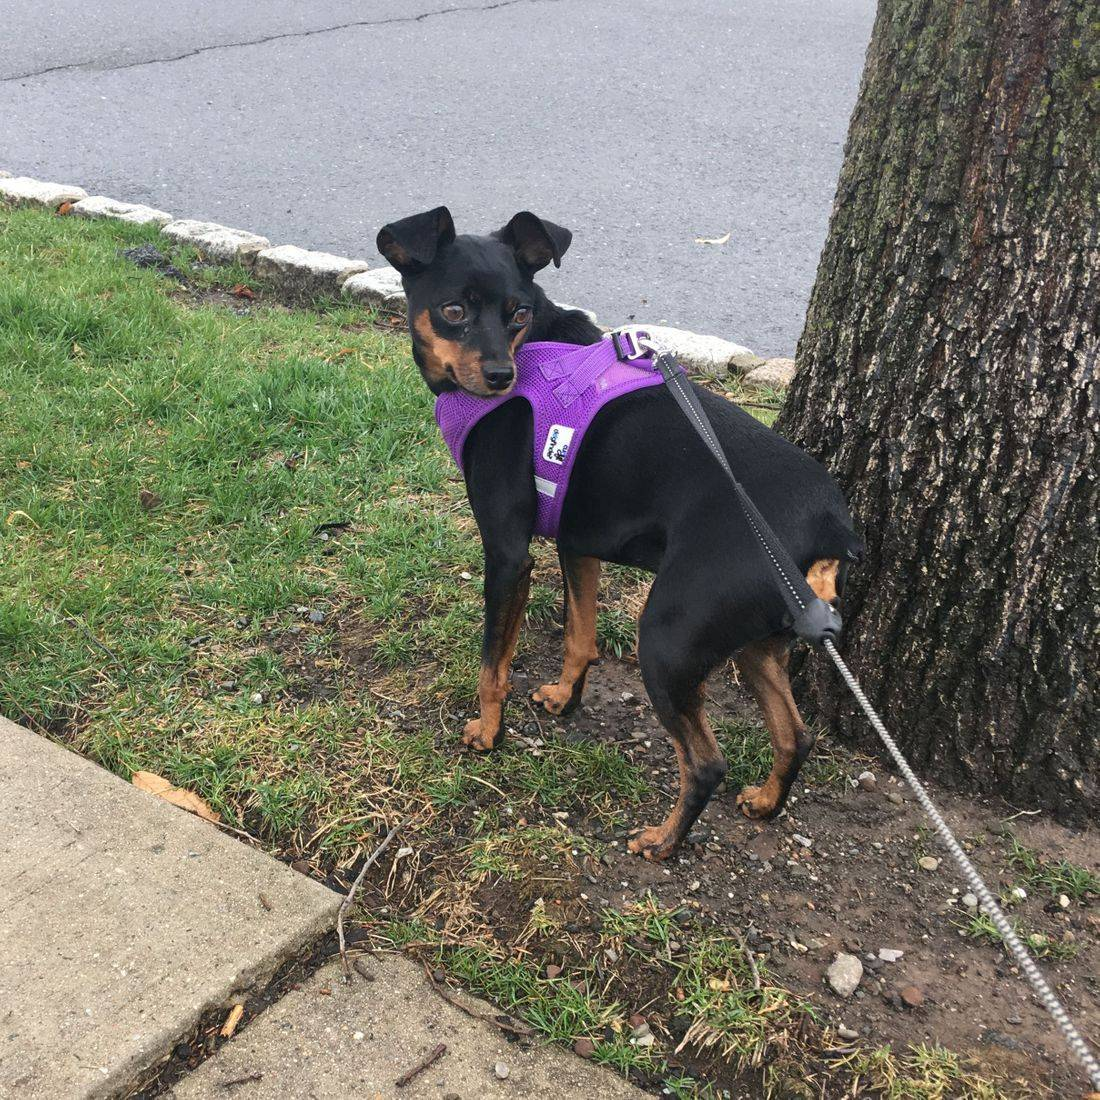 Photo of a black dog in a purple harness standing by a tree